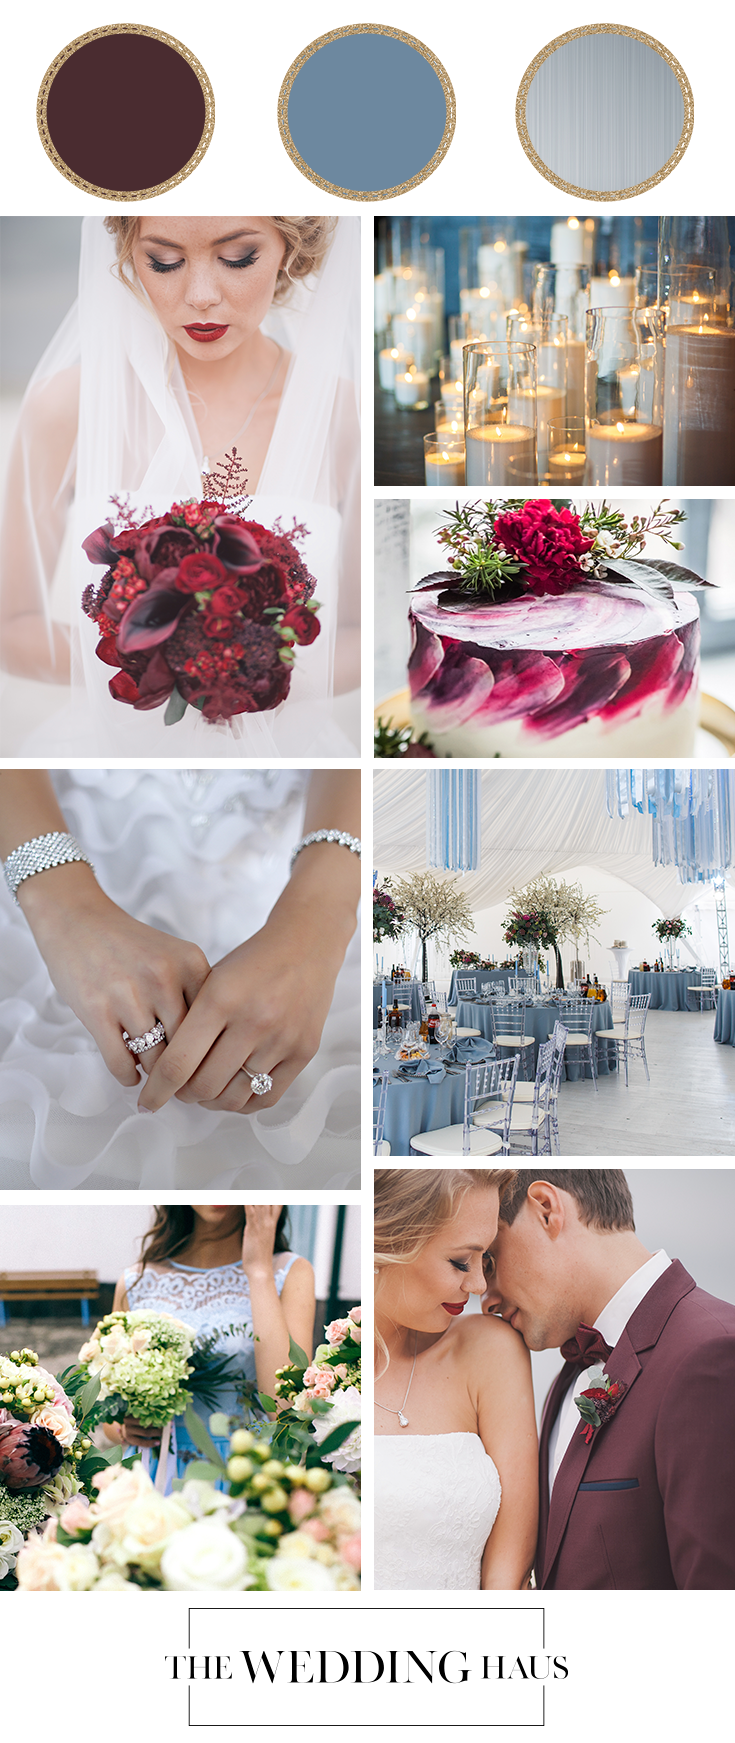 Dusty Blue and Burgundy Wedding Color Scheme from The Wedding Haus Premier Wedding Shop